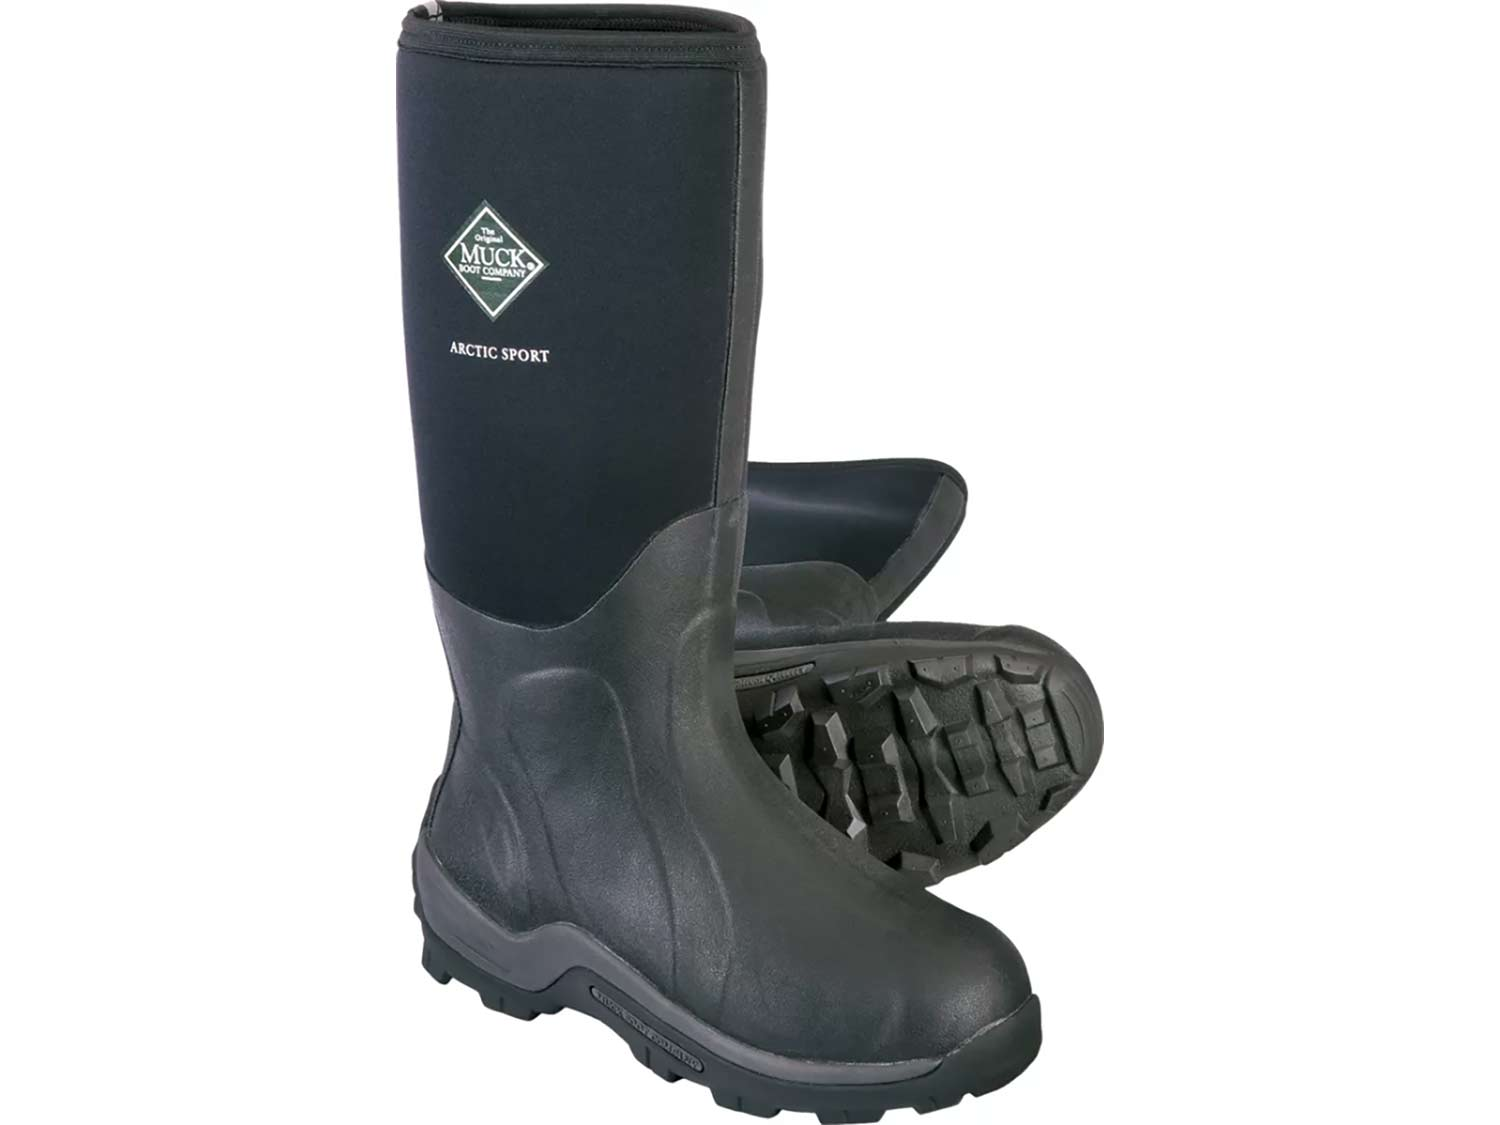 The Original Muck Boot Company Arctic Sport Extreme-Conditions Boots for Men